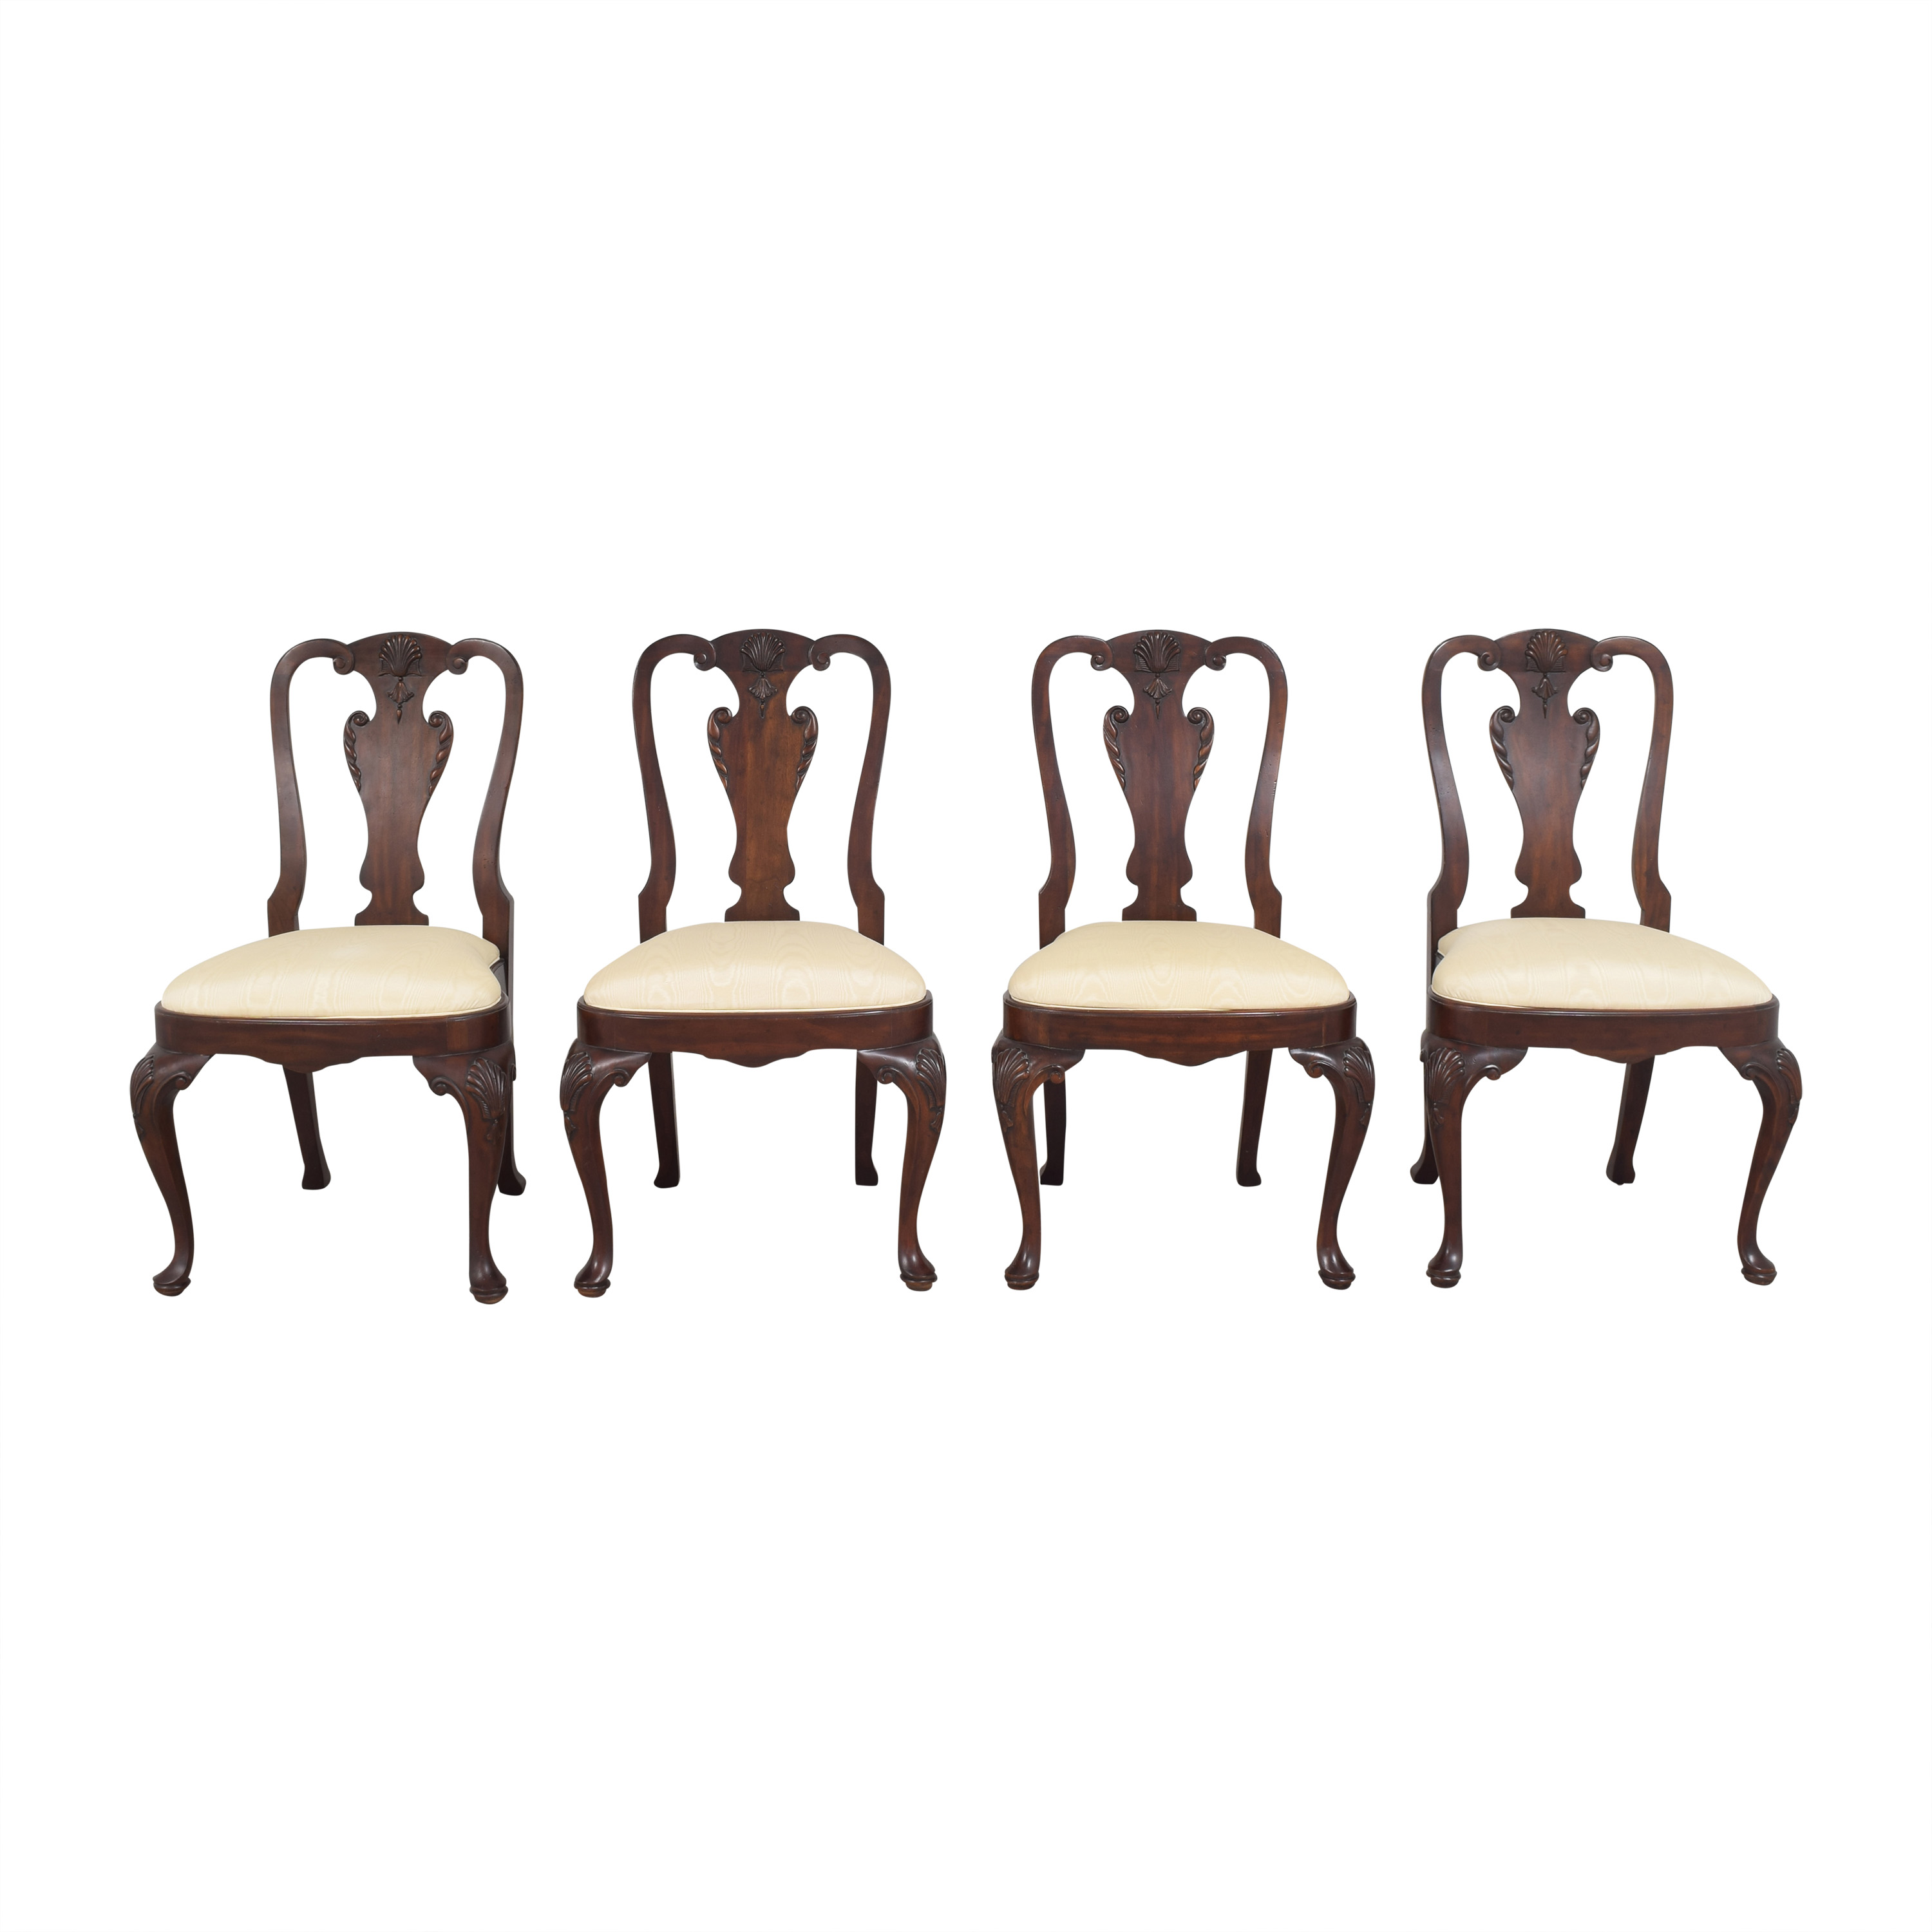 Maitland-Smith Maitland-Smith Regency Dining Chairs price